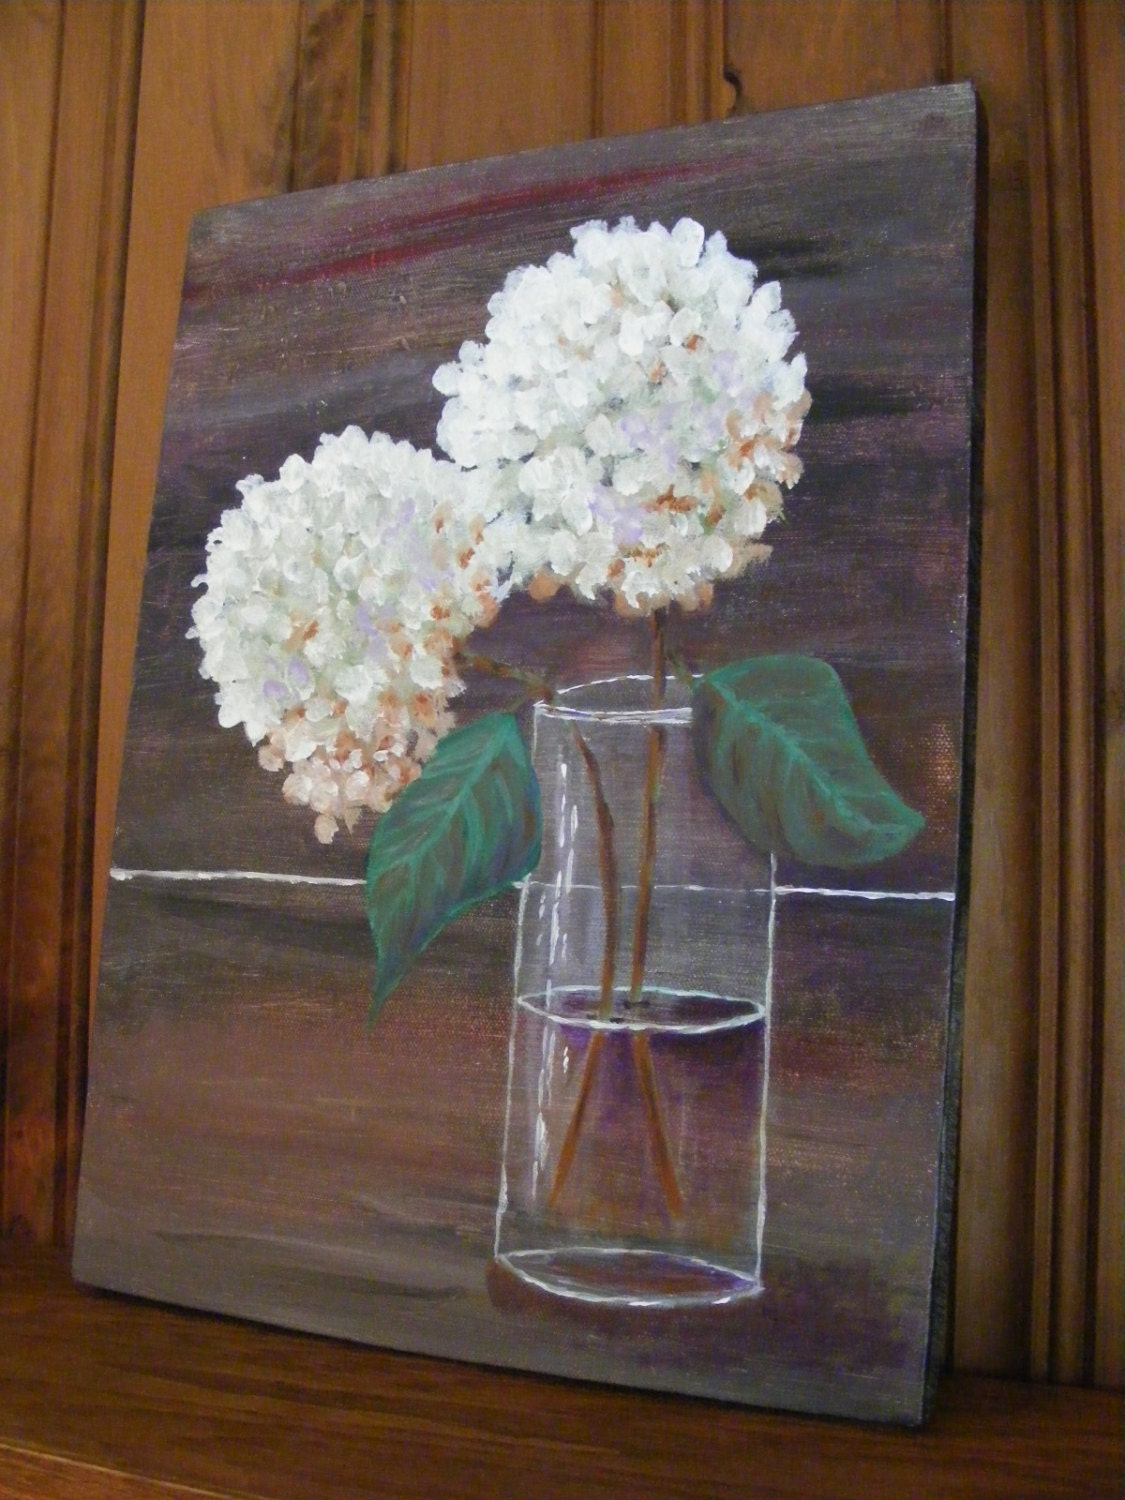 Painting Of Hydrangeaacrylic Painting Of White Hydrangeas In